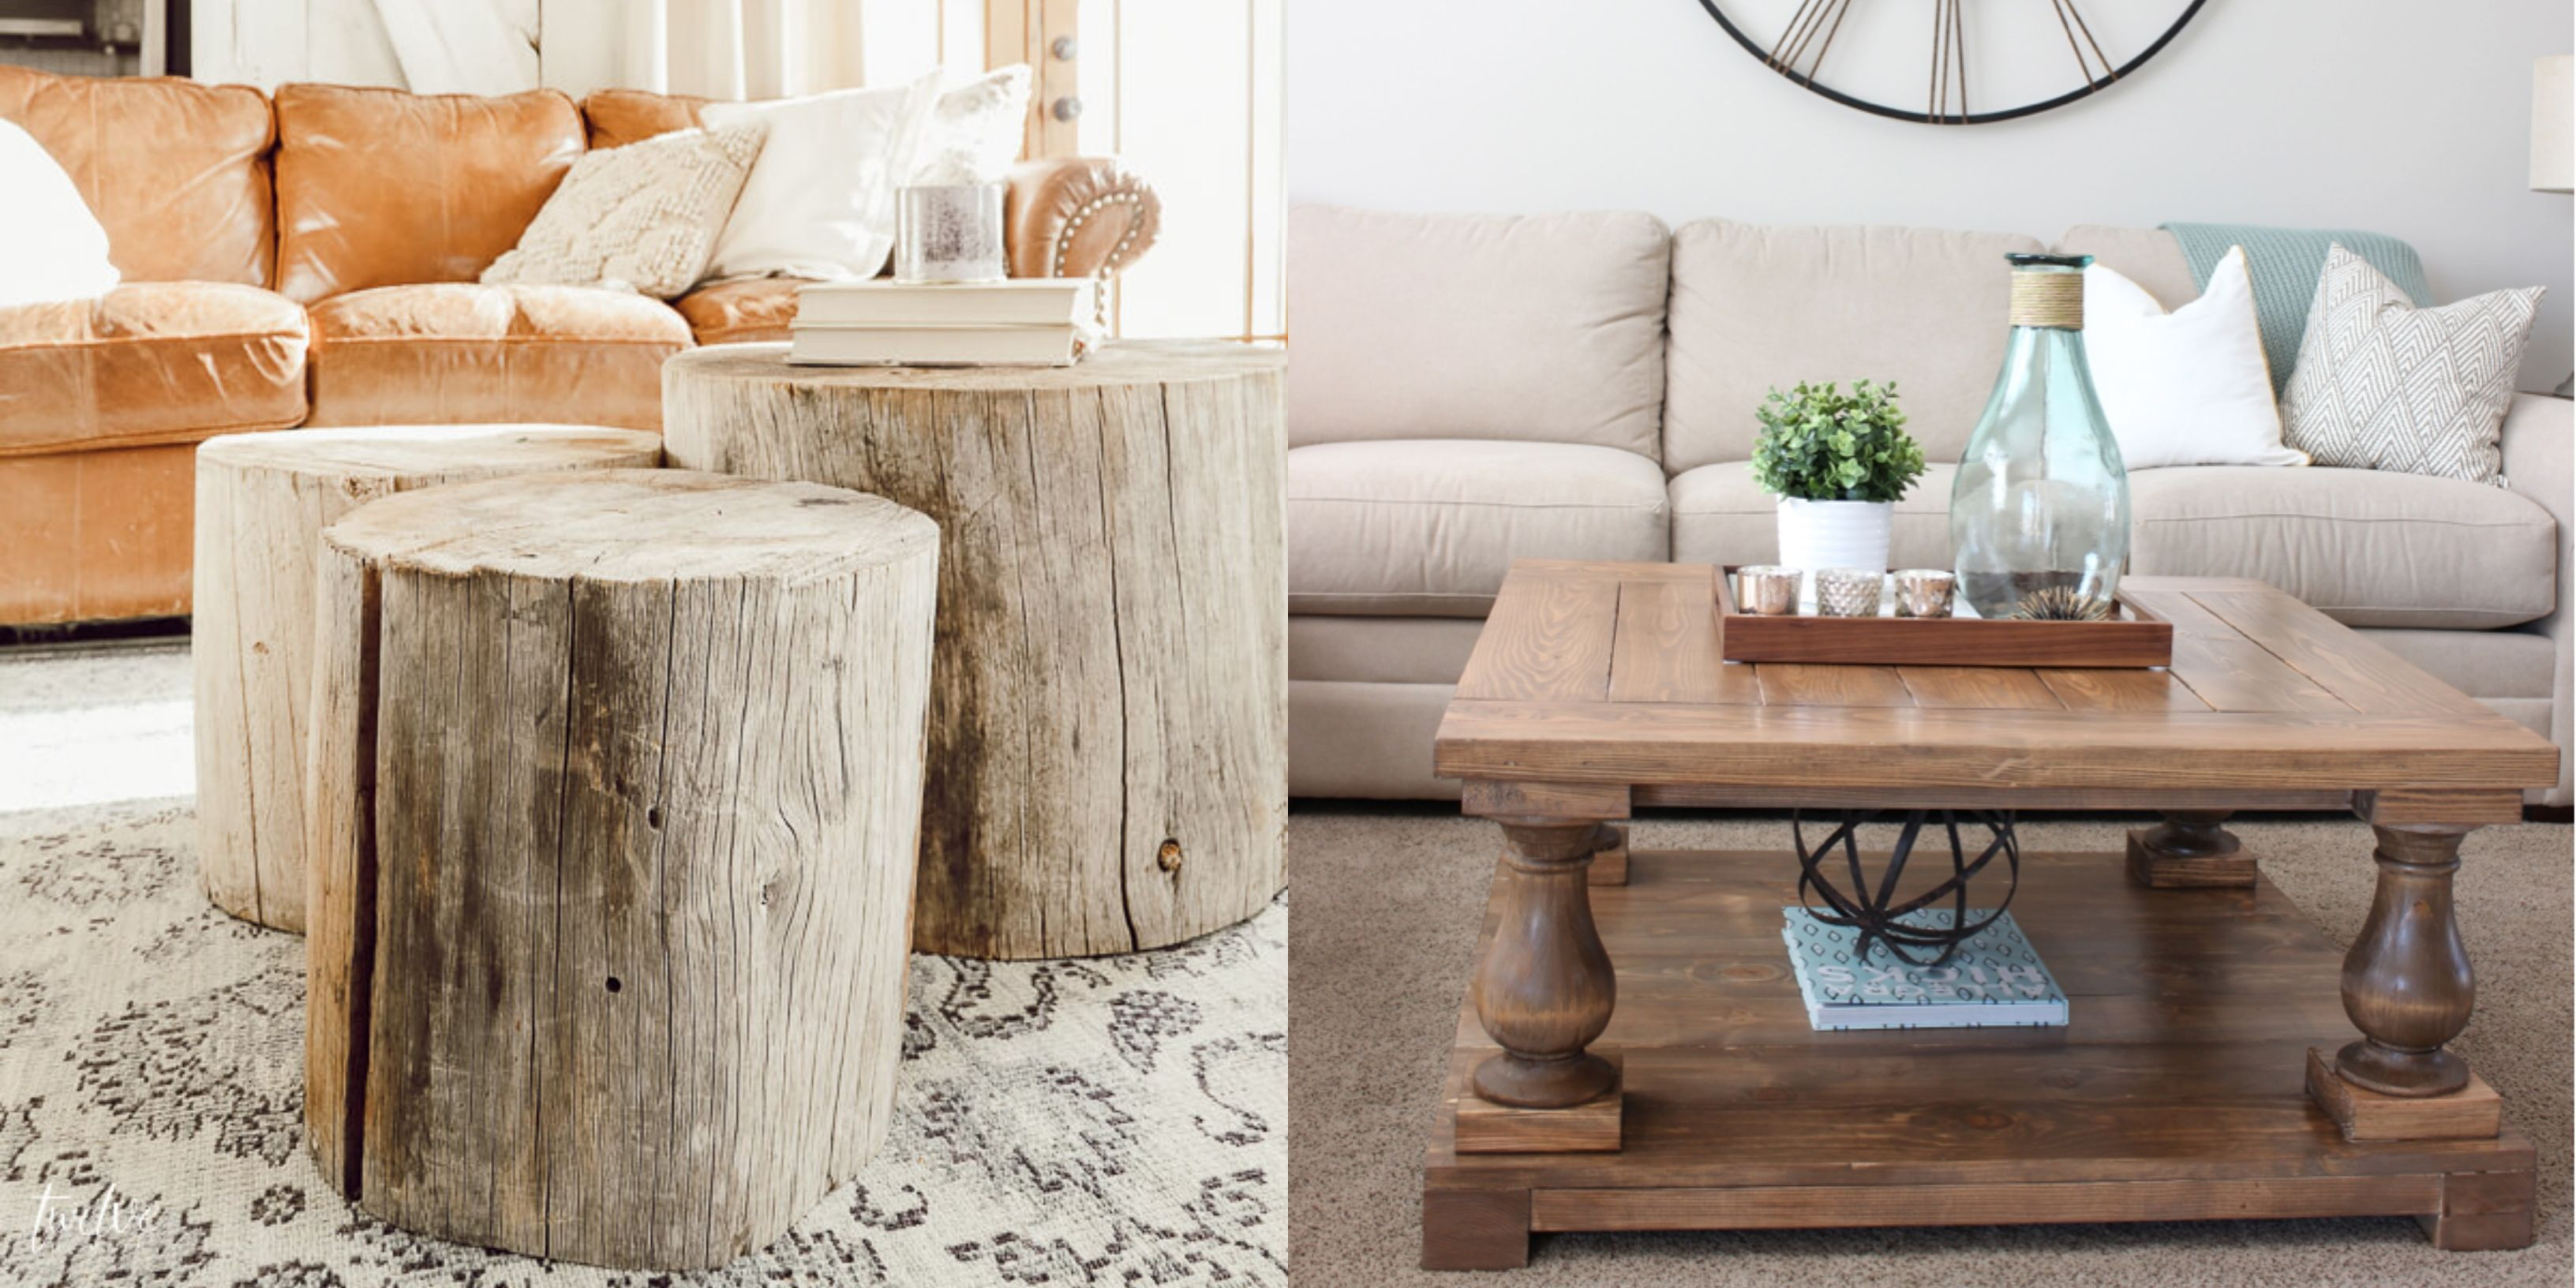 15 Diy Coffee Tables How To Make A Coffee Table